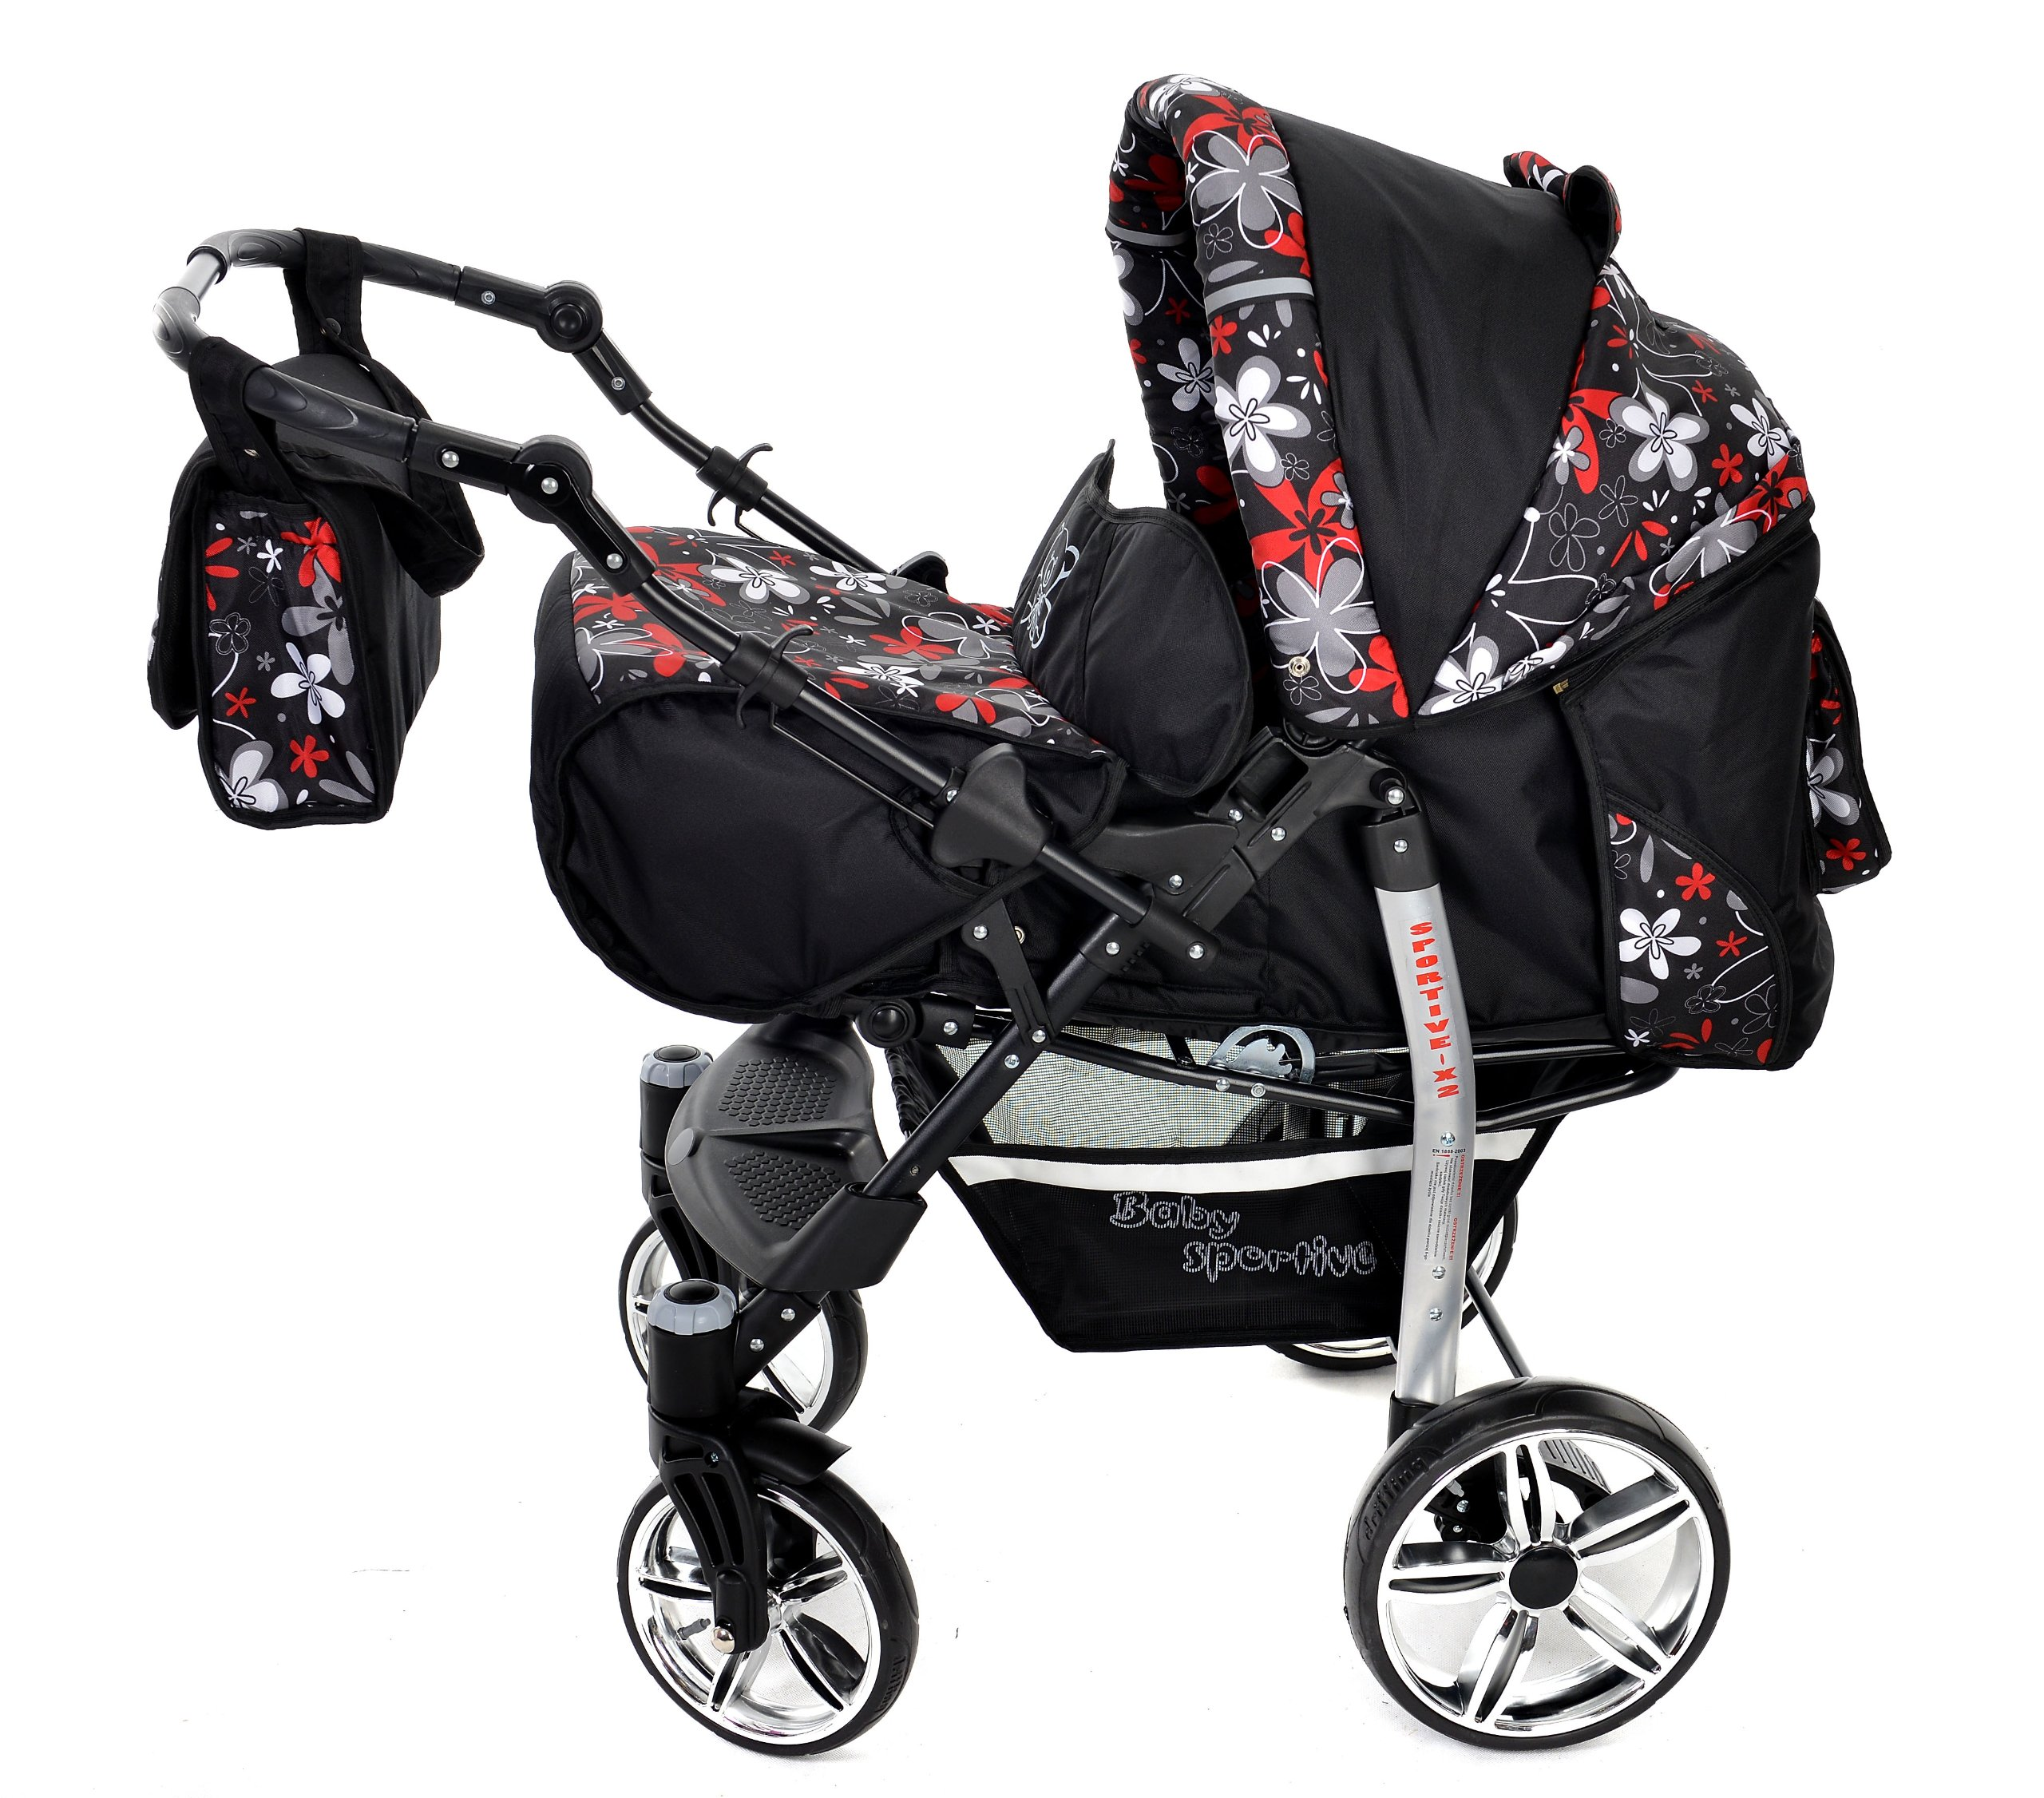 Sportive X2, 3-in-1 Travel System incl. Baby Pram with Swivel Wheels, Car Seat, Pushchair & Accessories (3-in-1 Travel System, Black & Small Flowers) Baby Sportive 3 in 1 Travel System All in One Set - Pram, Car Carrier Seat and Sport Buggy + Accessories: carrier bag, rain protection, mosquito net, changing mat, removable bottle holder and removable tray for your child's bits and pieces Suitable from birth, Easy Quick Folding System; Large storage basket; Turnable handle bar that allows to face or rear the drive direction; Quick release rear wheels for easy cleaning after muddy walks Front lockable 360o swivel wheels for manoeuvrability , Small sized when folded, fits into many small car trunks, Carry-cot with a removable hood, Reflective elements for better visibility 2